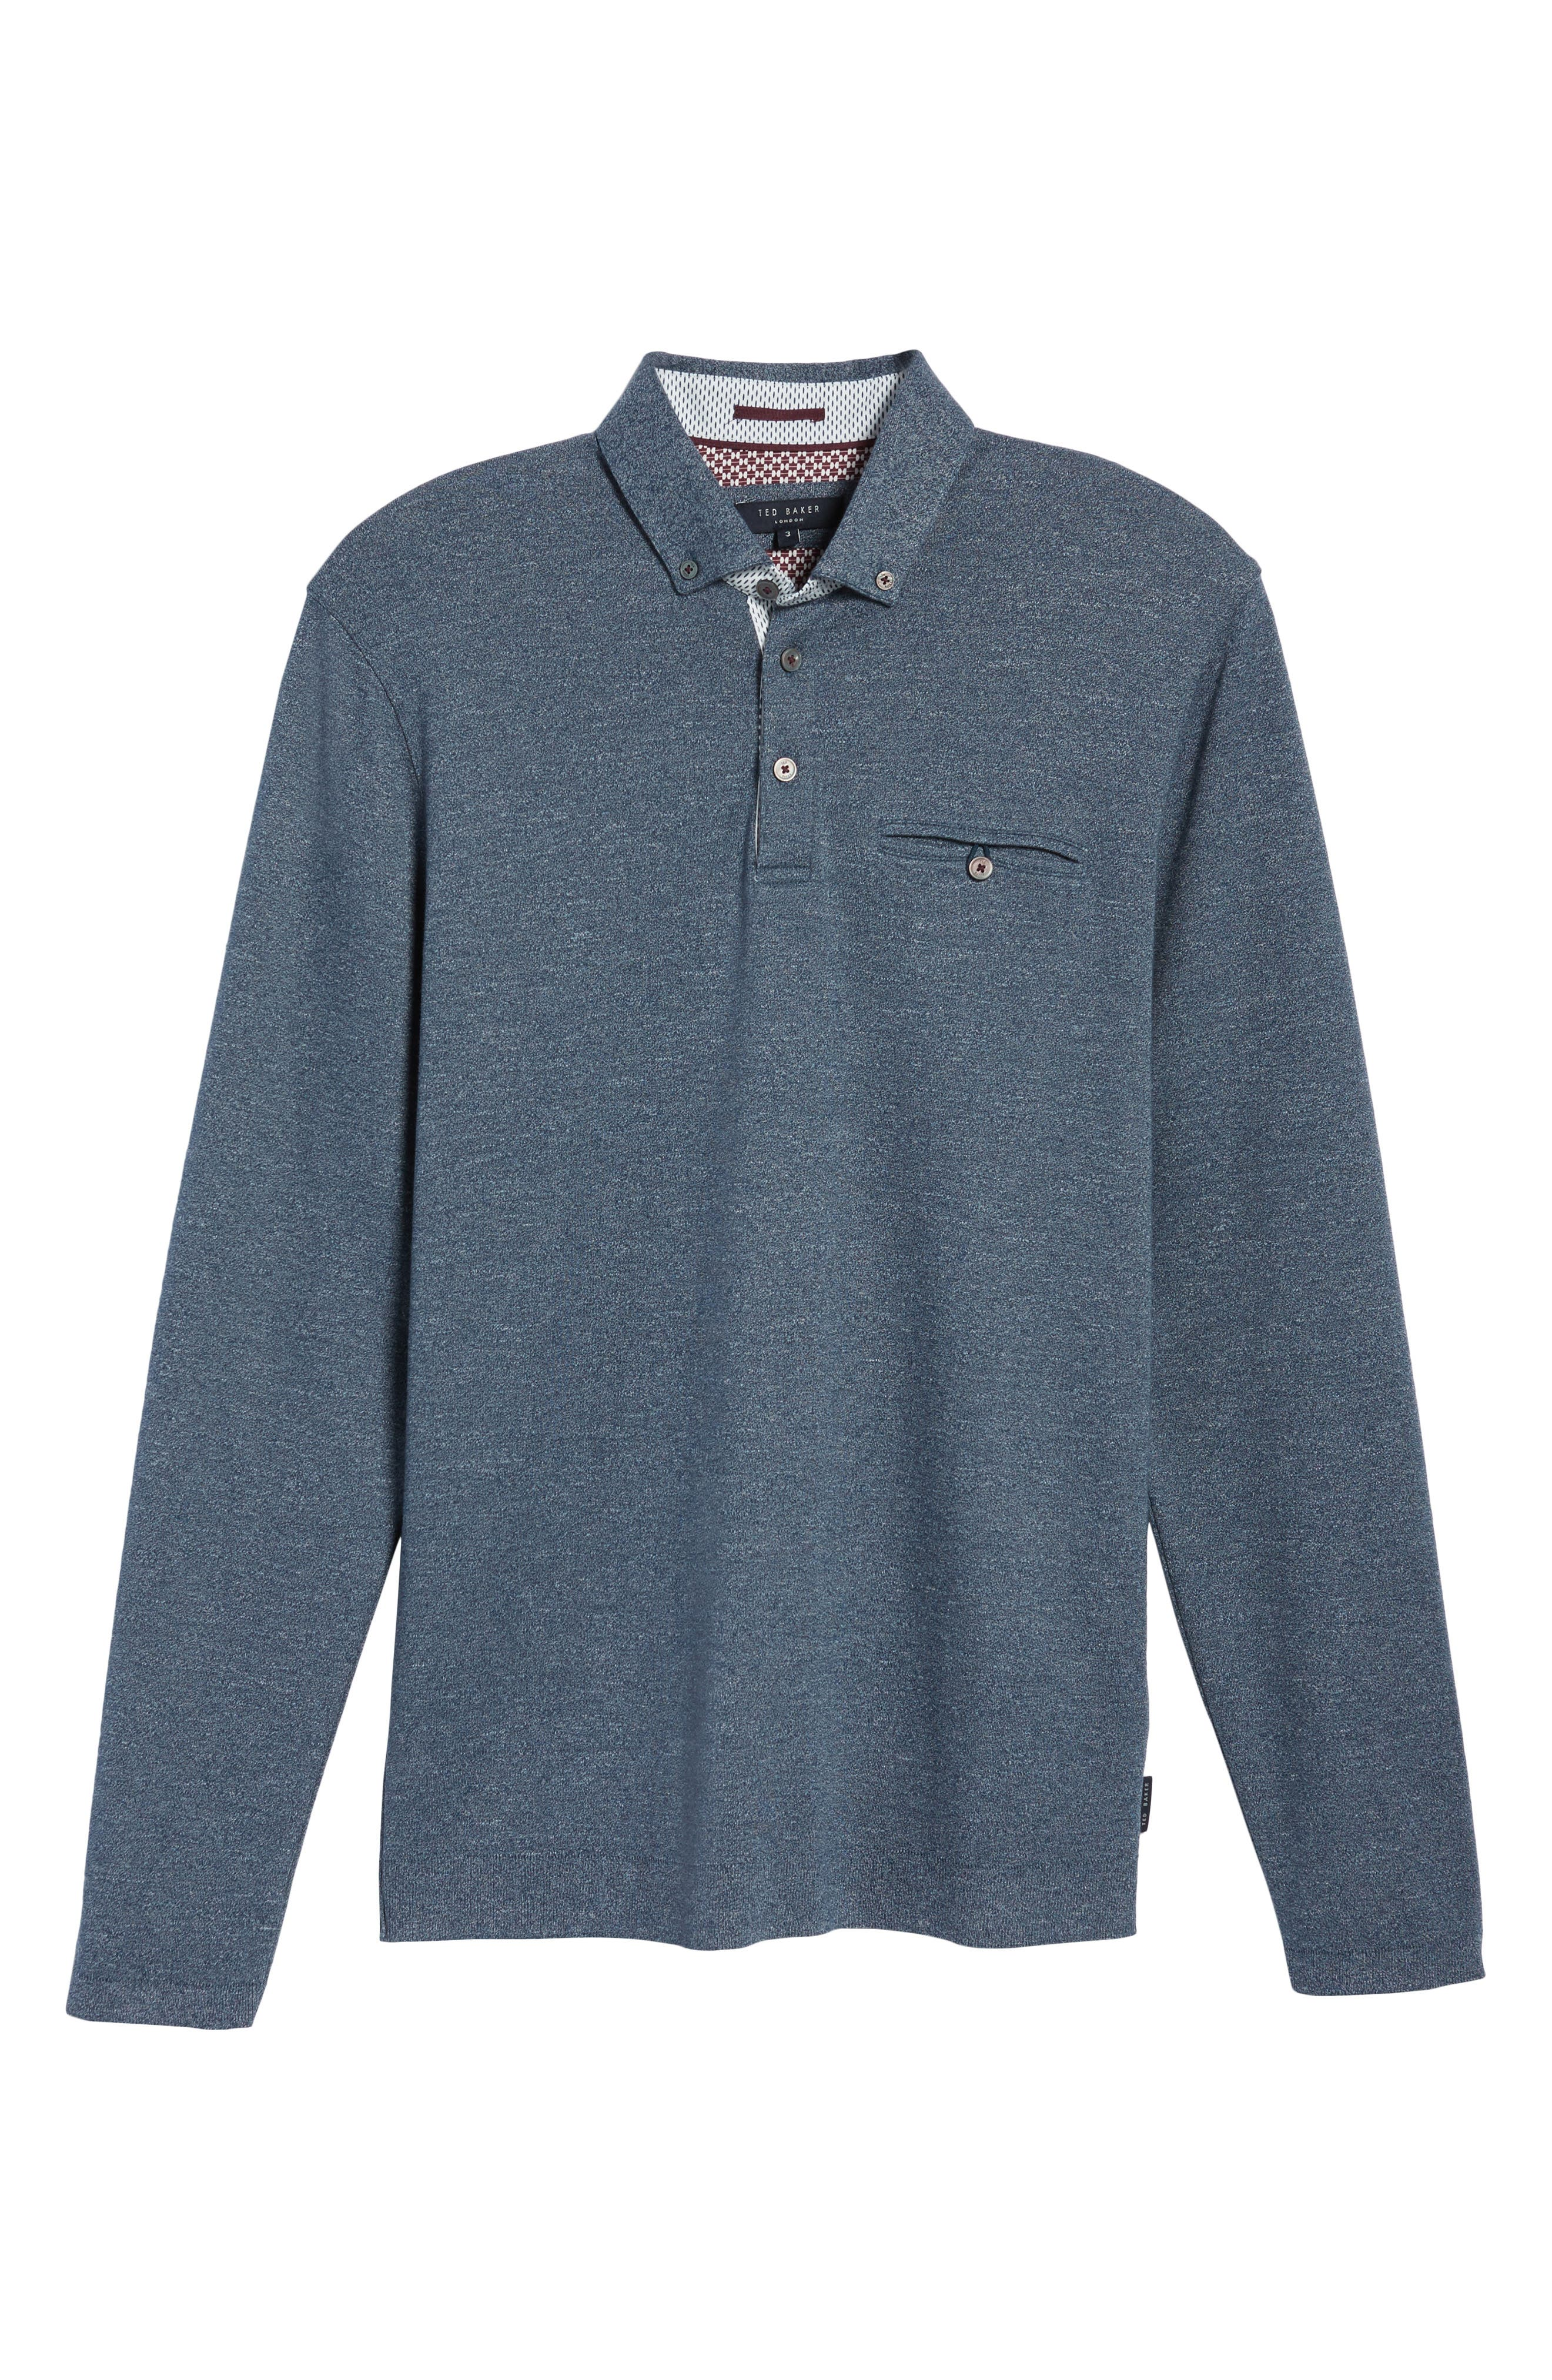 Yamway Modern Slim Fit Long Sleeve Polo,                             Alternate thumbnail 17, color,